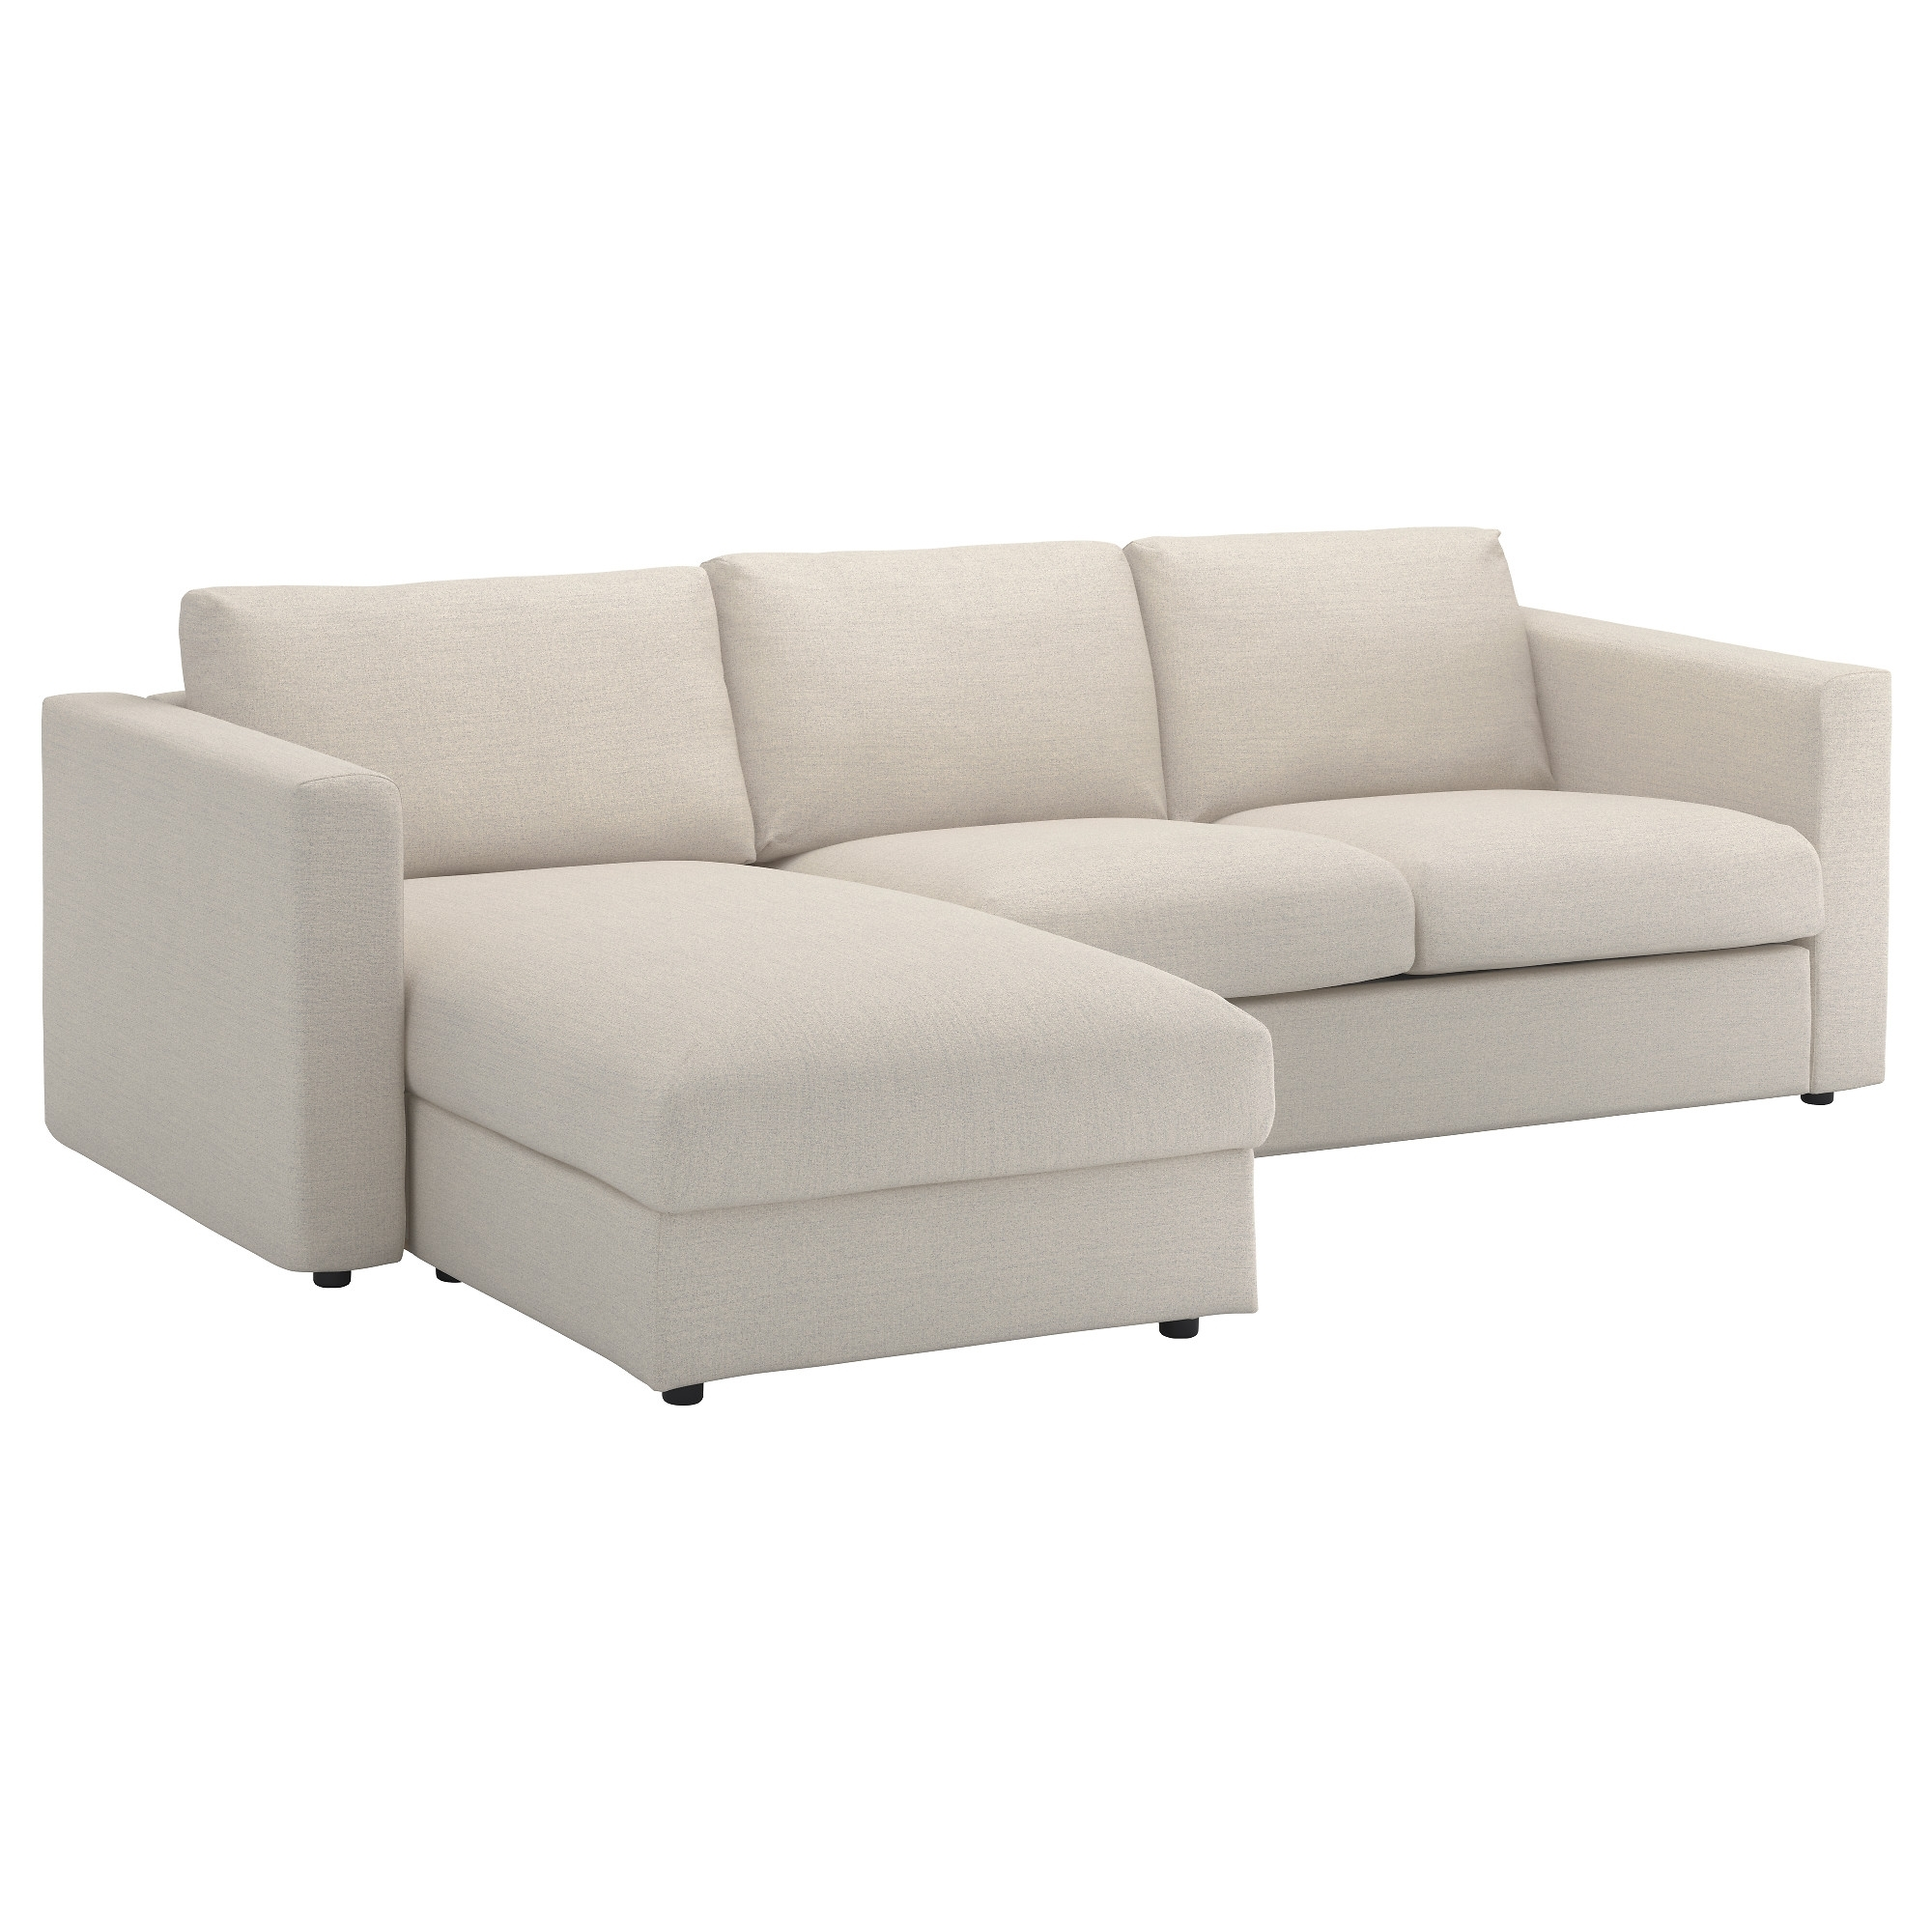 Preferred Sofas With Chaise Lounge Throughout Vimle Sofa – With Chaise/gunnared Beige – Ikea (View 11 of 15)